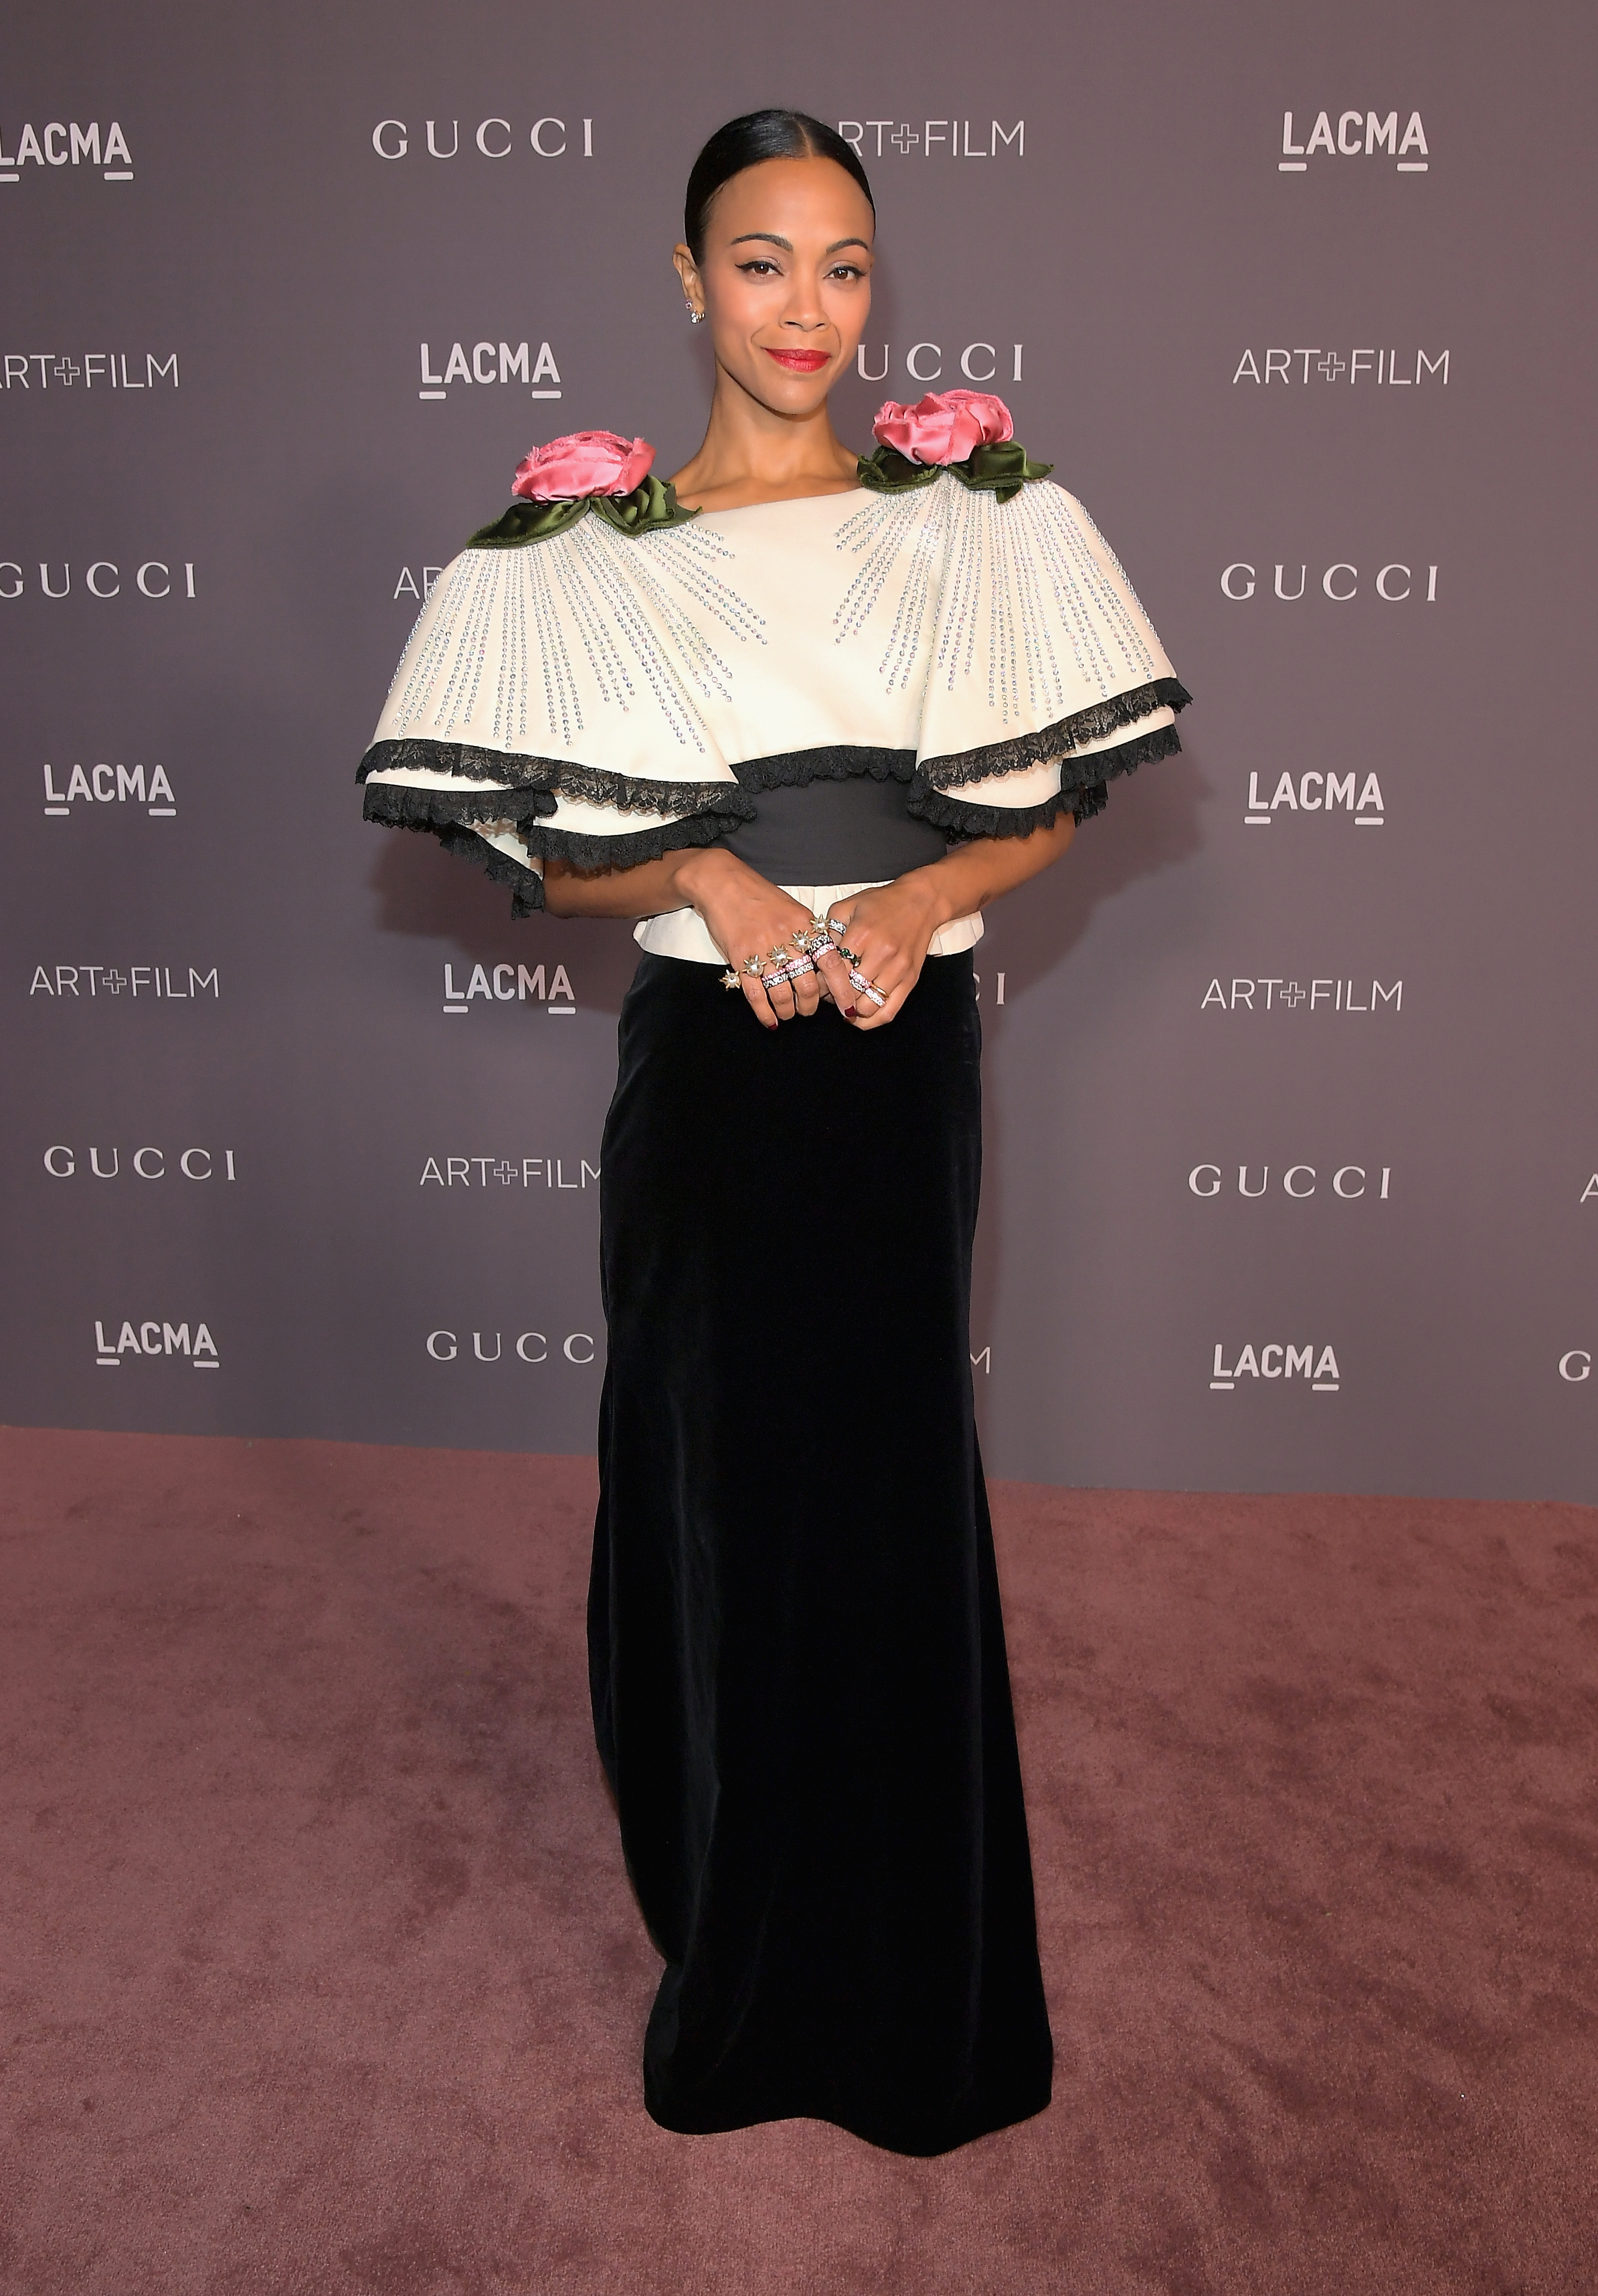 LOS ANGELES, CA - NOVEMBER 04: Actor Zoe Saldana, wearing Gucci, attends the 2017 LACMA Art + Film Gala Honoring Mark Bradford and George Lucas presented by Gucci at LACMA on November 4, 2017 in Los Angeles, California. (Photo by Charley Gallay/Getty Images for LACMA)